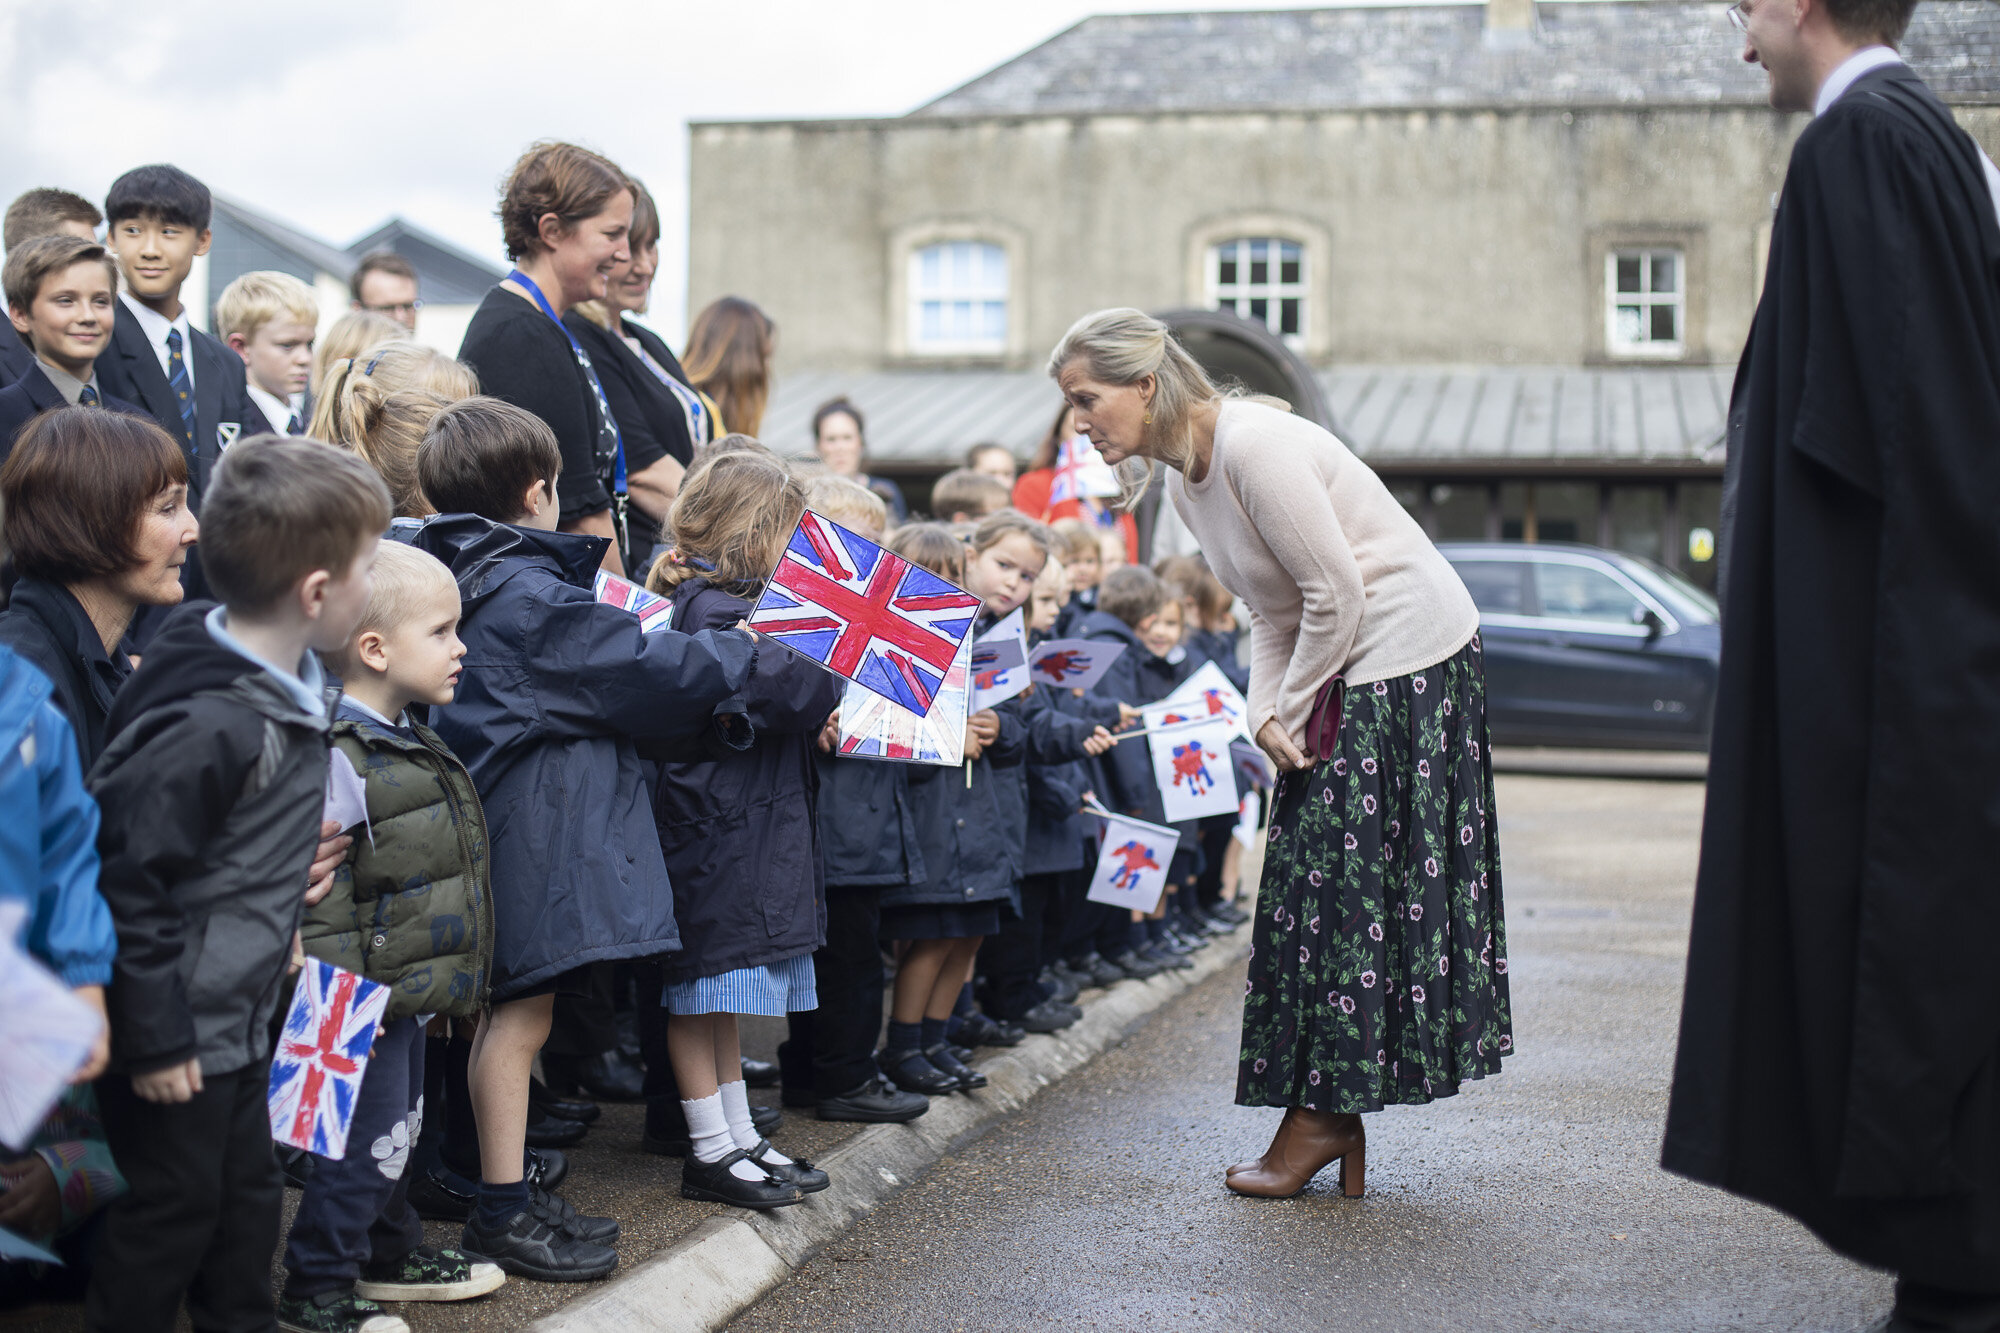 The Countess of Wessex visits Wells Cathedral Chorister Trust - September 2019 2.jpg